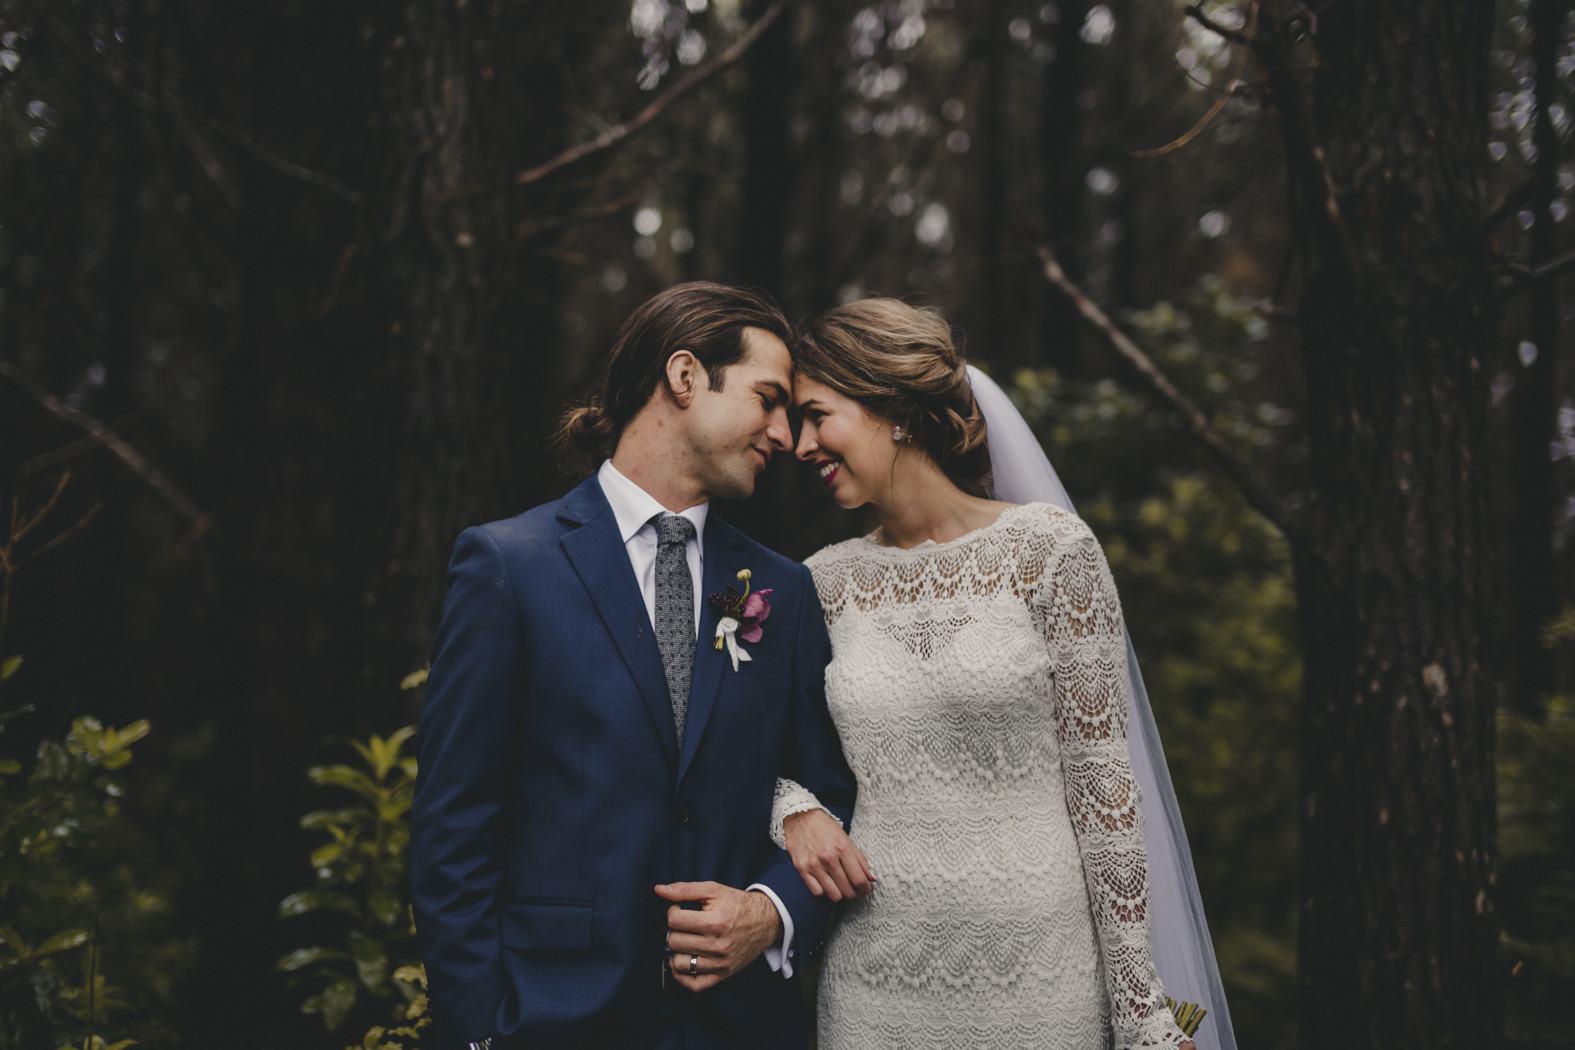 Categories: Weddings-Real Wedding: Stephanie + Douglas - Photography by Heather Liddell